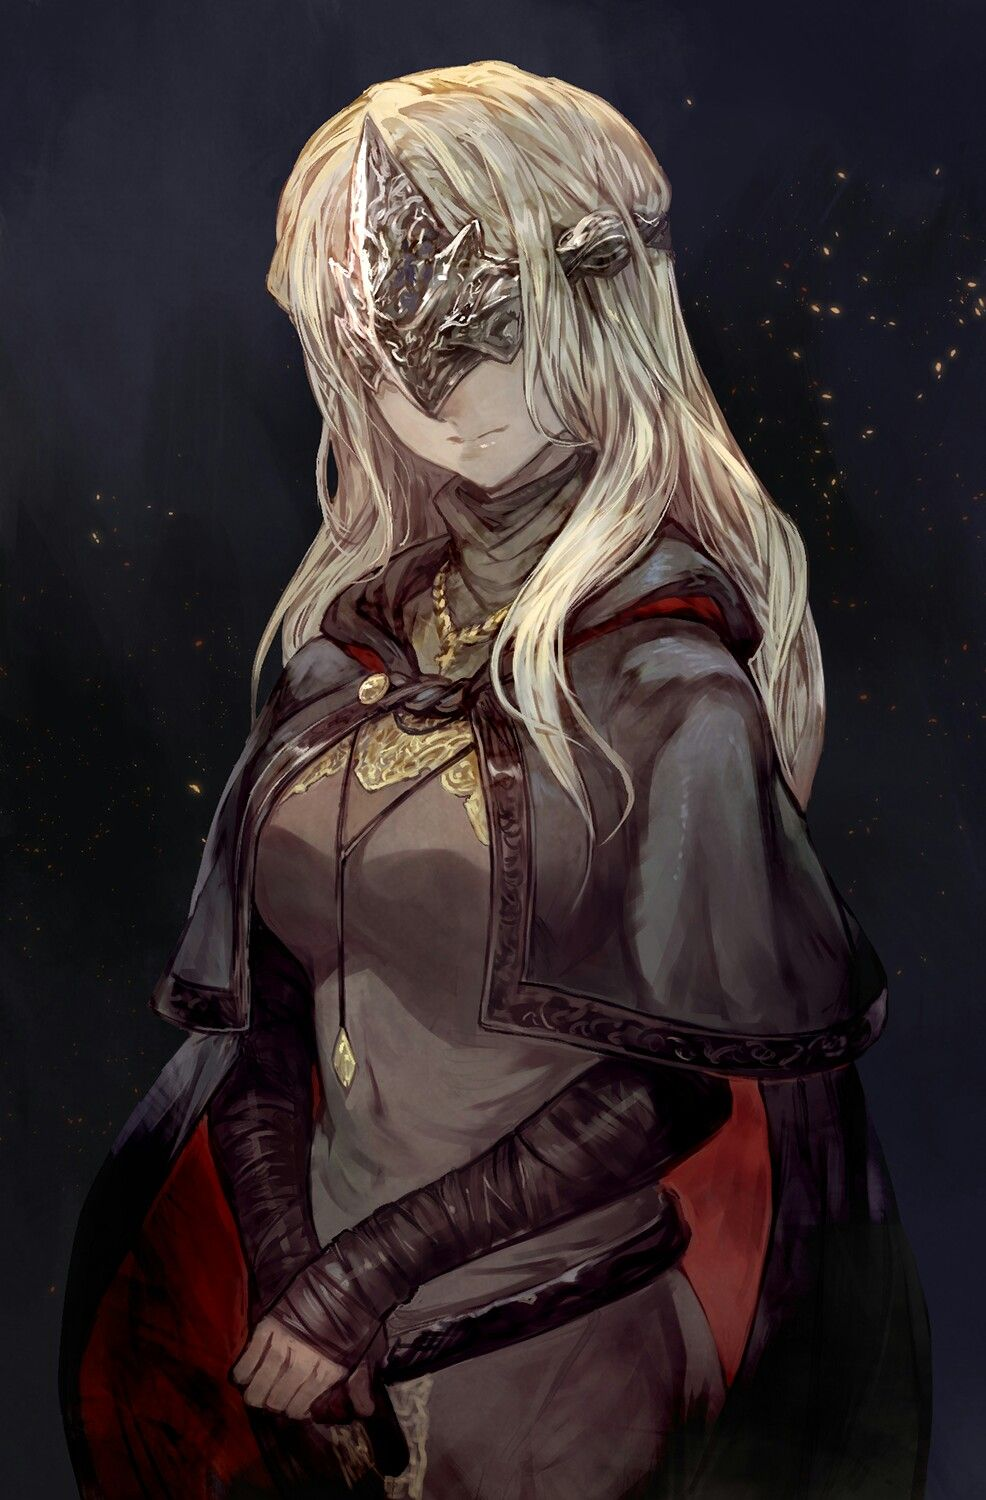 Bloodborne | Bloodborne and Dark Souls | Pinterest ...